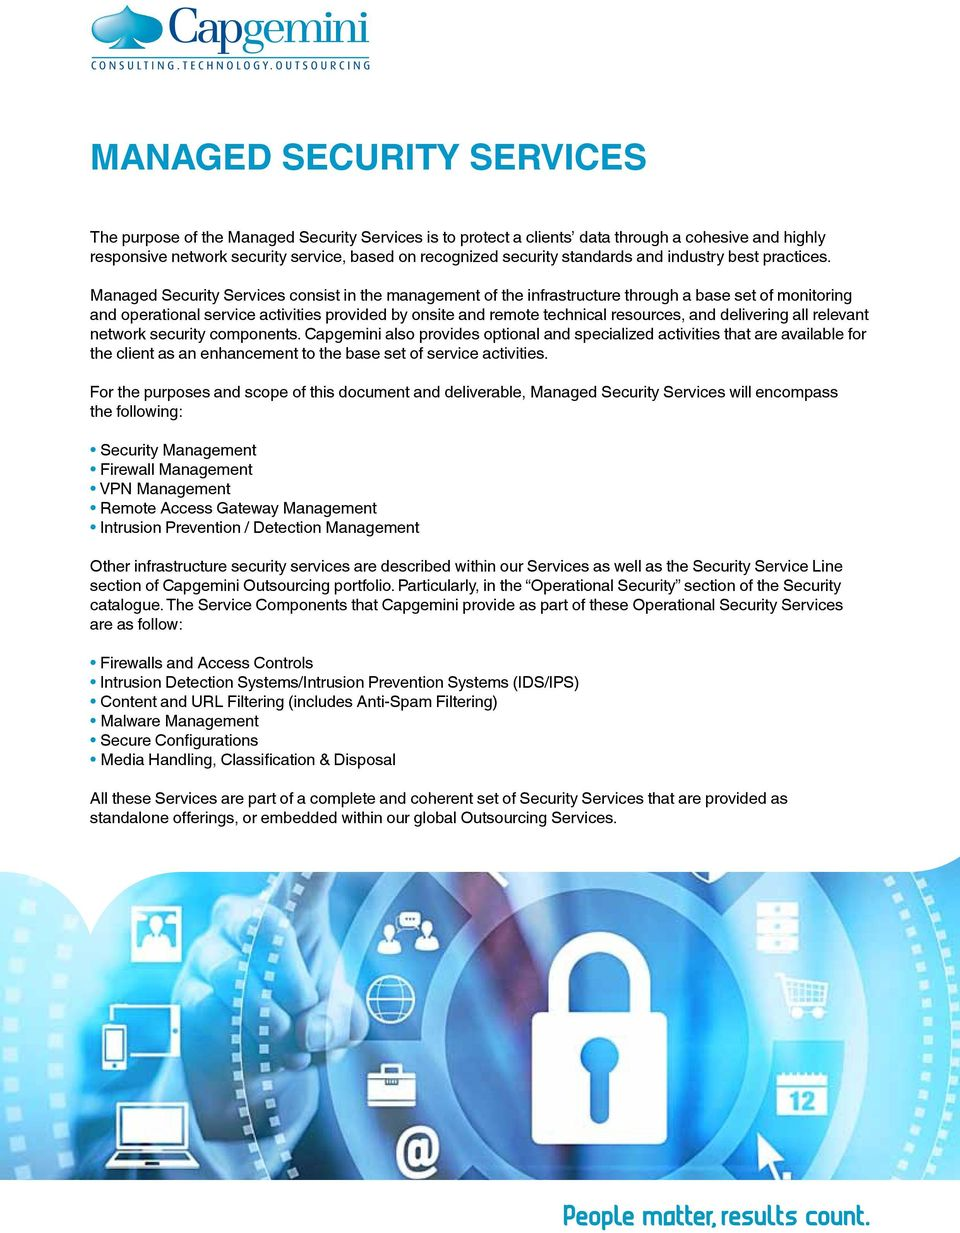 Managed Services consist in the management of the infrastructure through a base set of monitoring and operational service activities provided by onsite and remote technical resources, and delivering